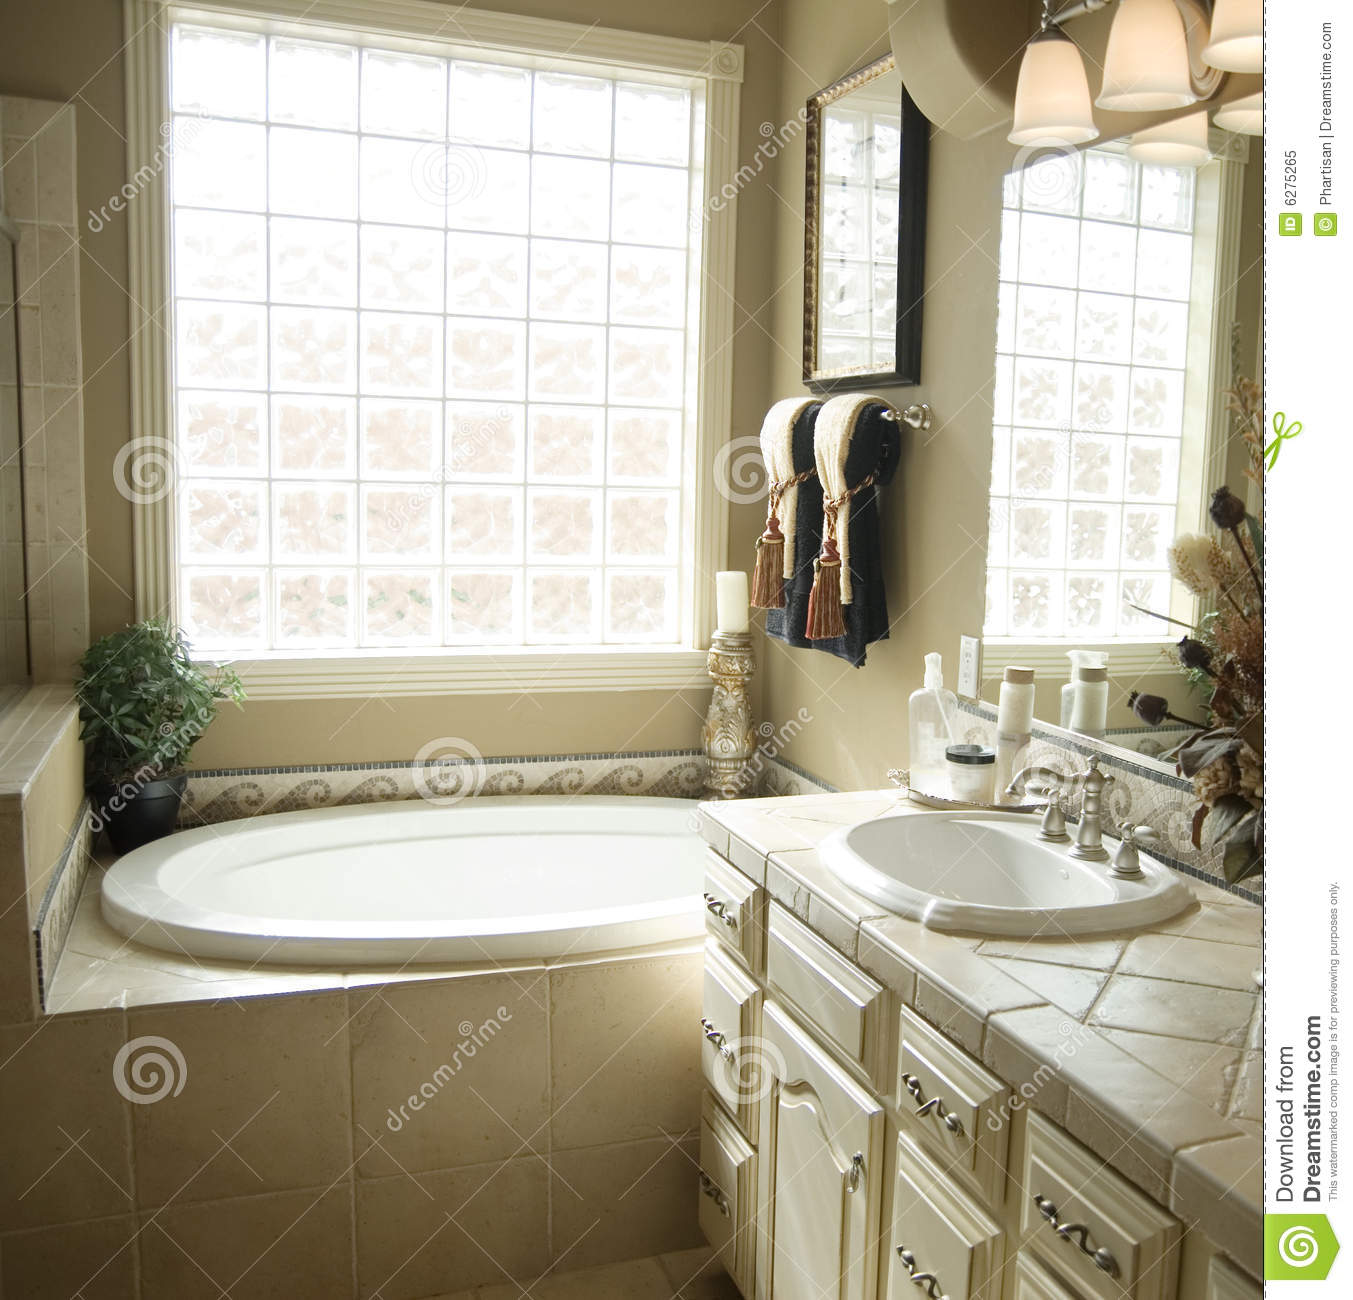 Royalty Free Stock Photo Bathroom Design Home Interior